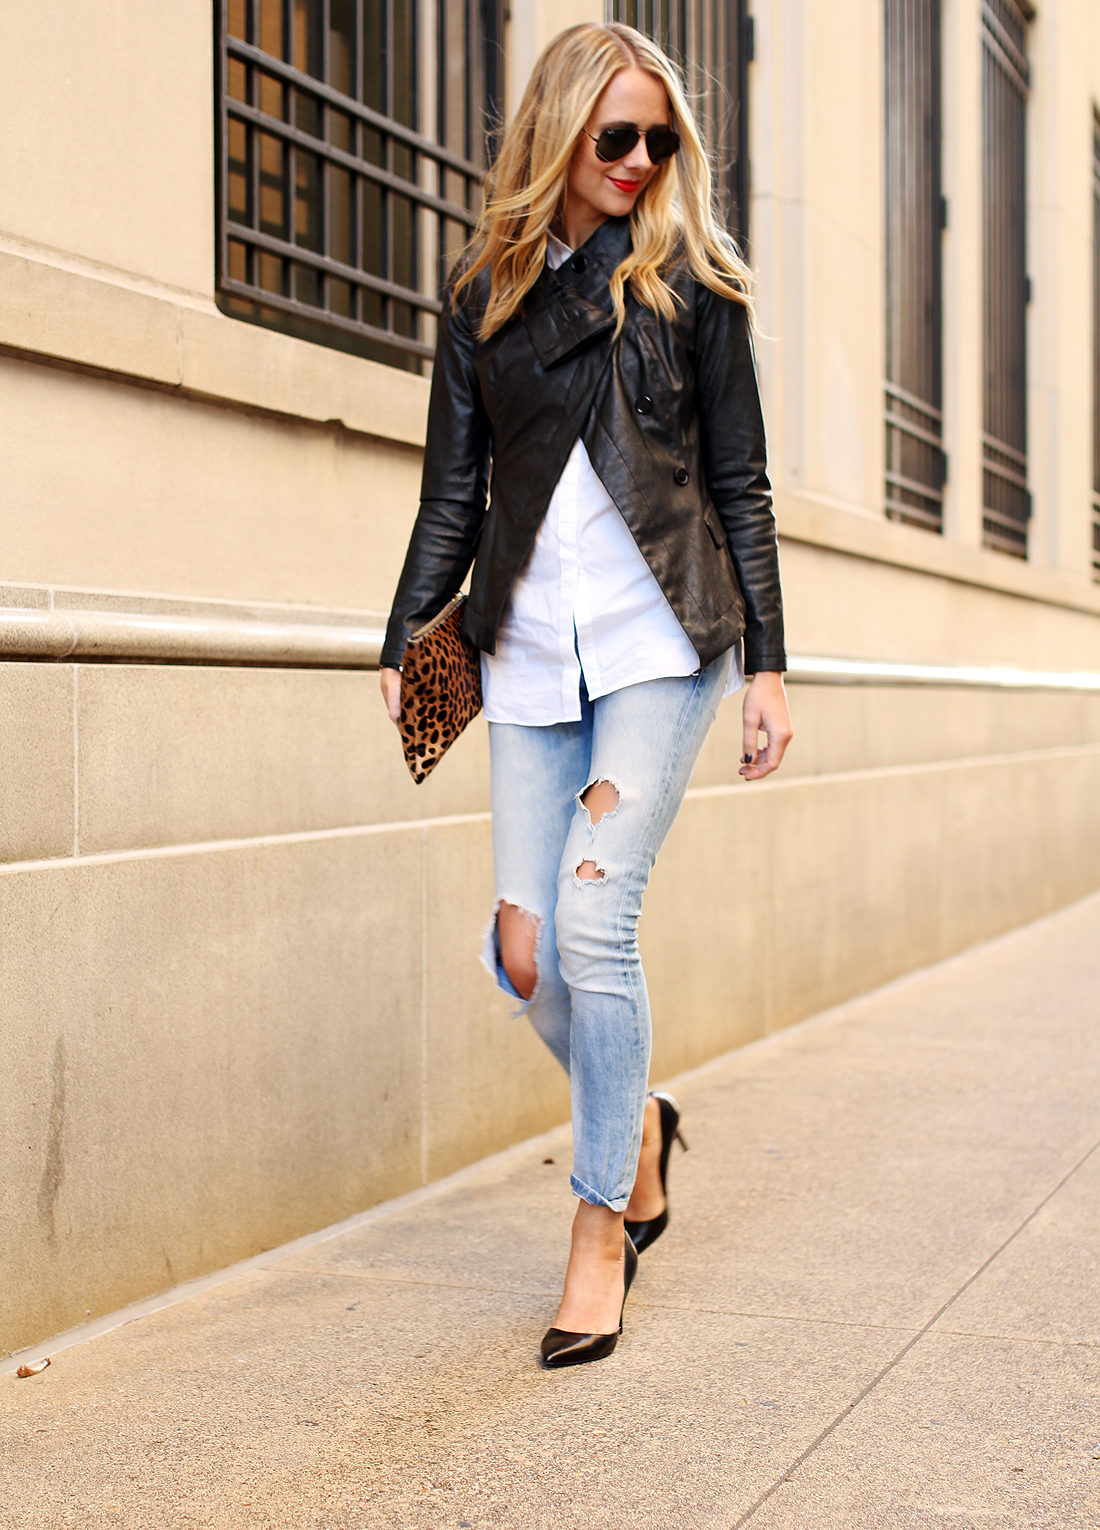 fashion-jackson-black-faux-leather-jacket-ripped-skinny-jeans-leopard-clutch-black-pumps-white-shirt